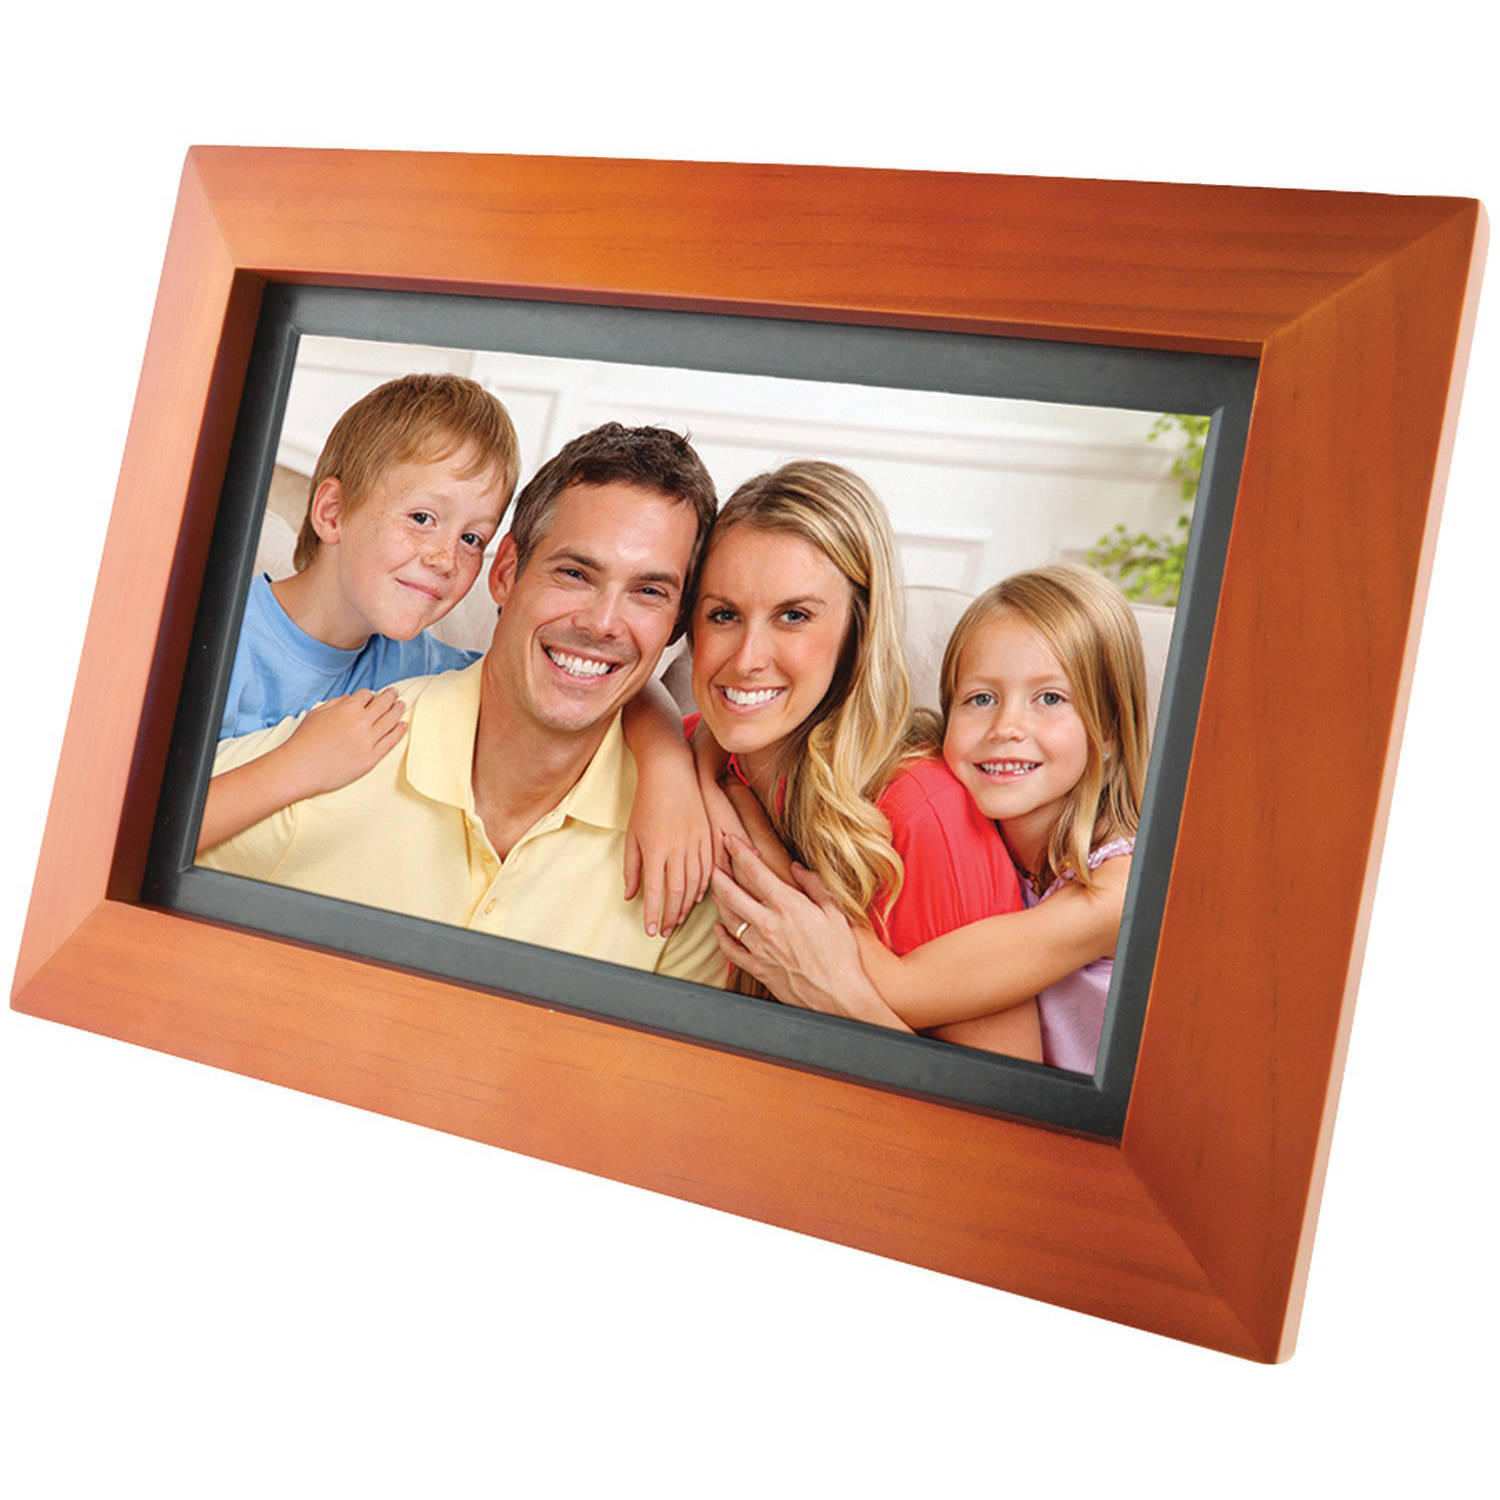 GPX PF903CW Digital Photo Frame